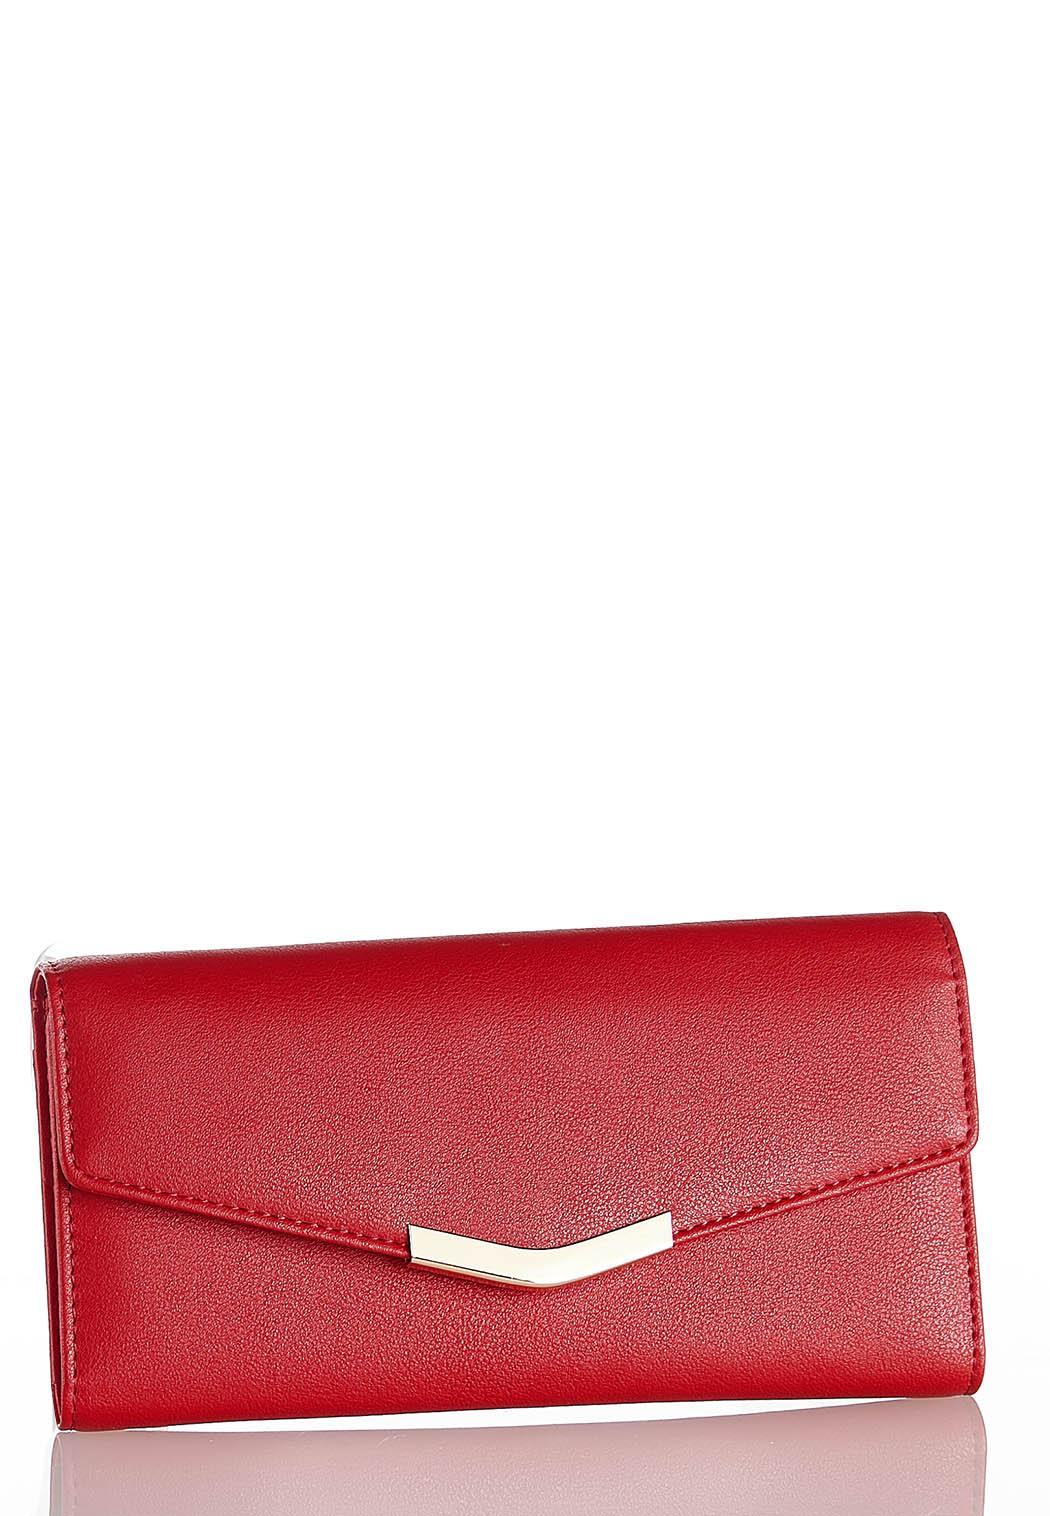 Classic Red Wallet